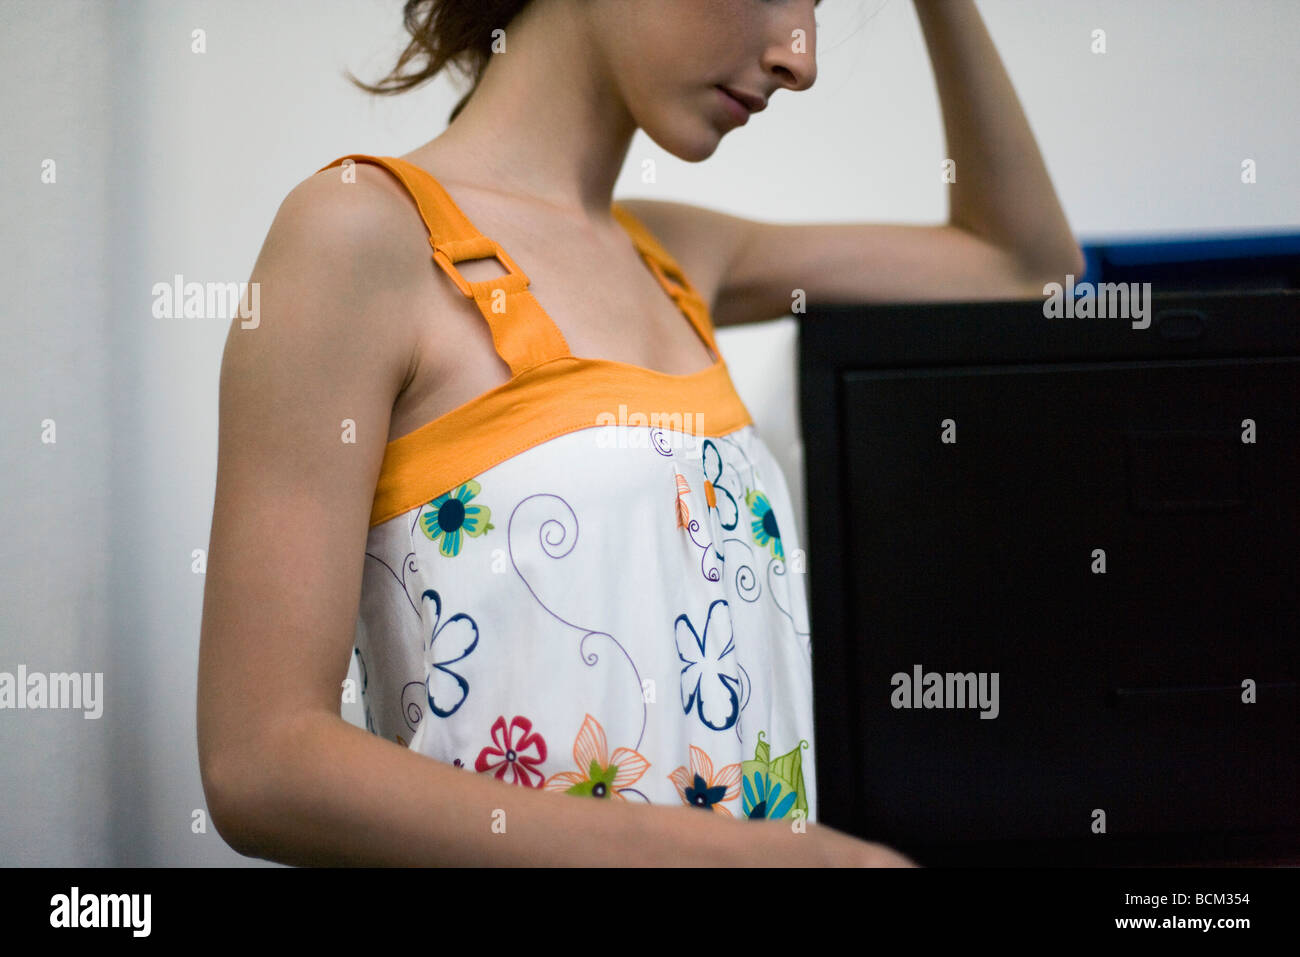 Young woman in tank top leaning against filing cabinet, cropped - Stock Image